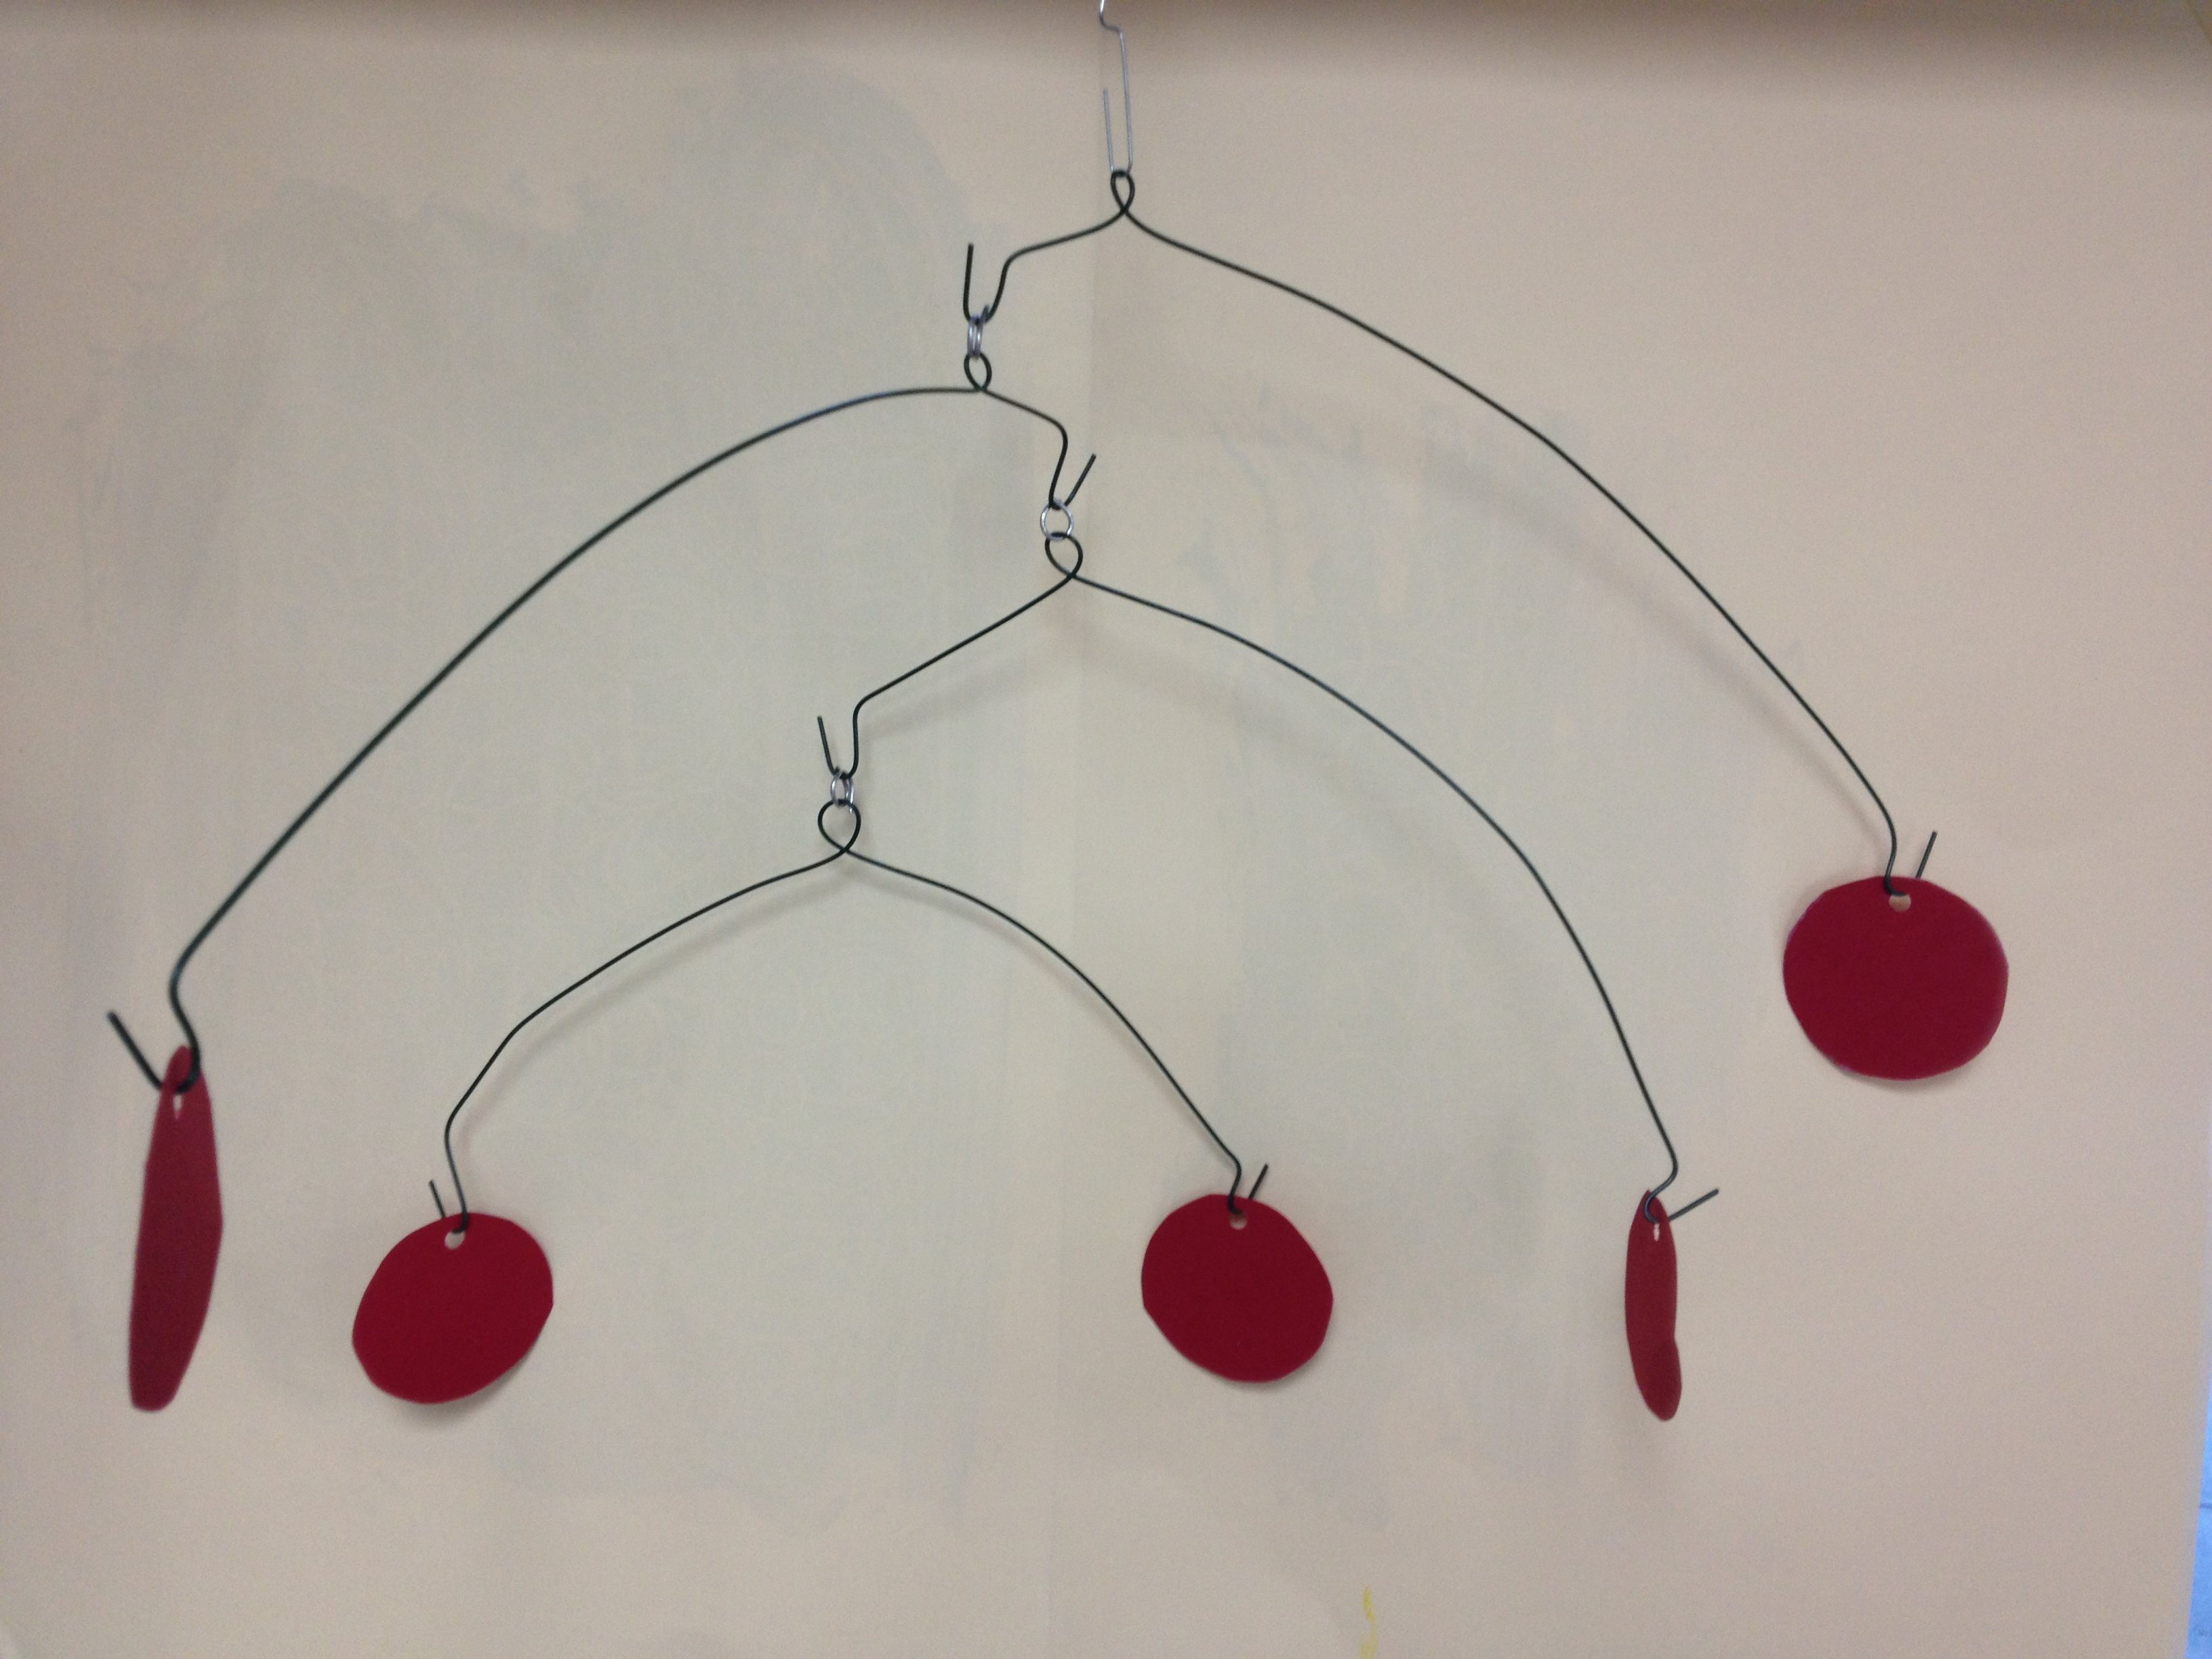 How to Create a Calder Mobile advise